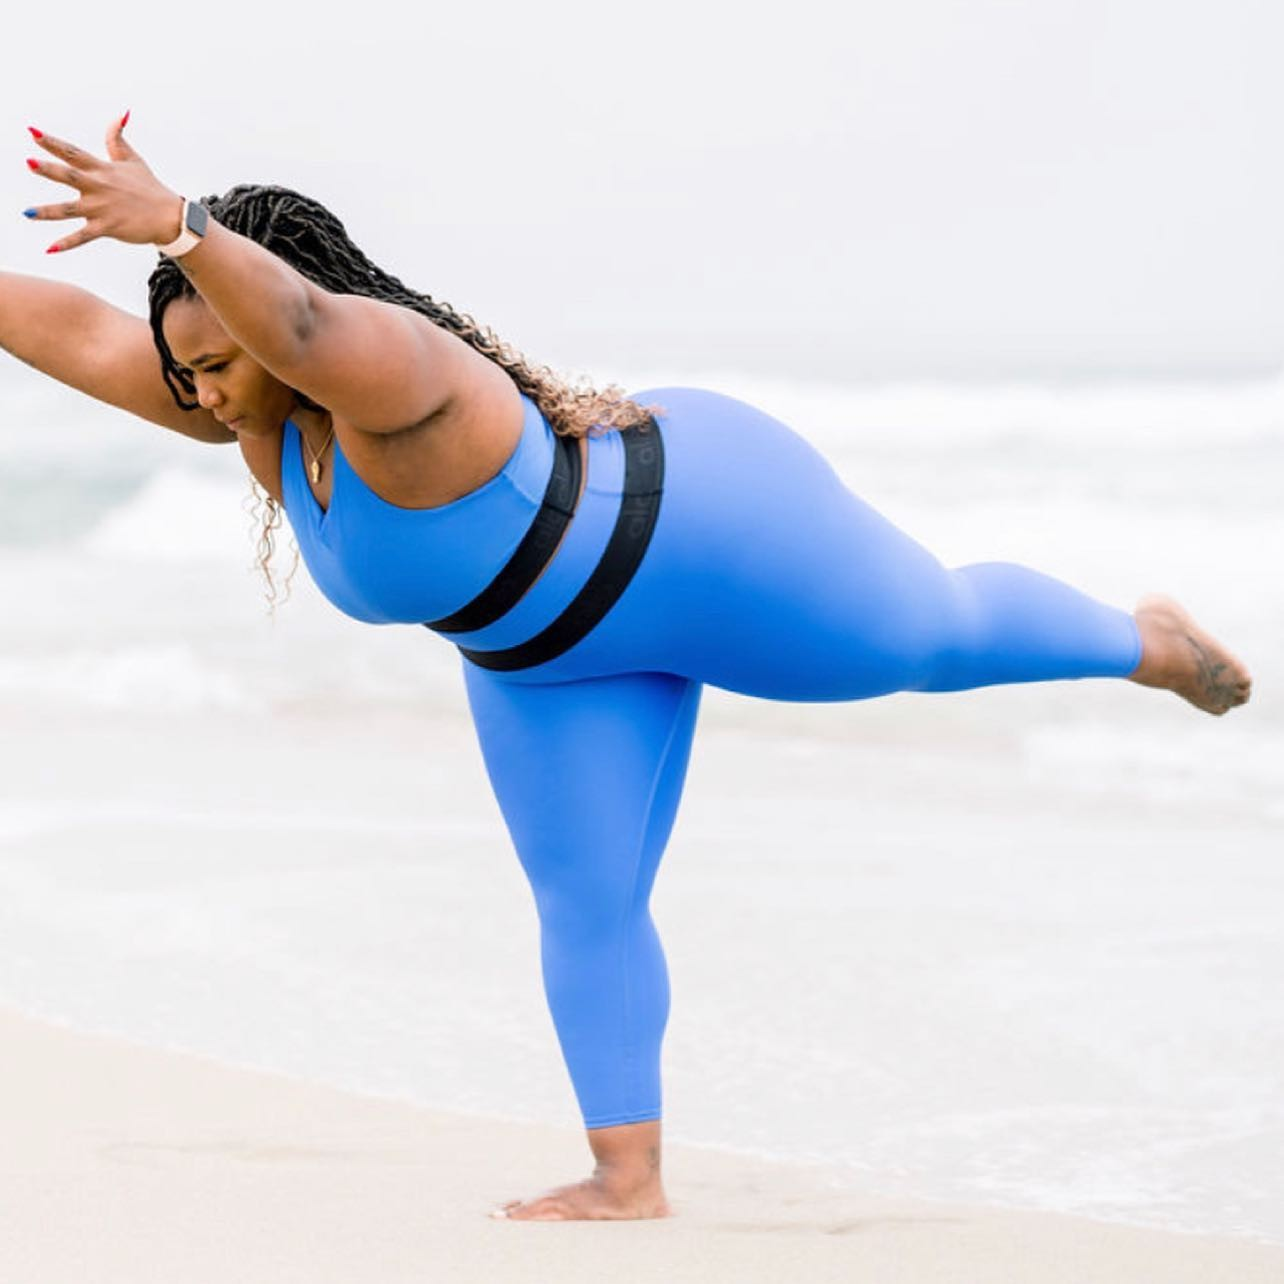 @christajanine wearing bright blue capri leggings with a matching sports bra top while performing Warrior III on the beach.